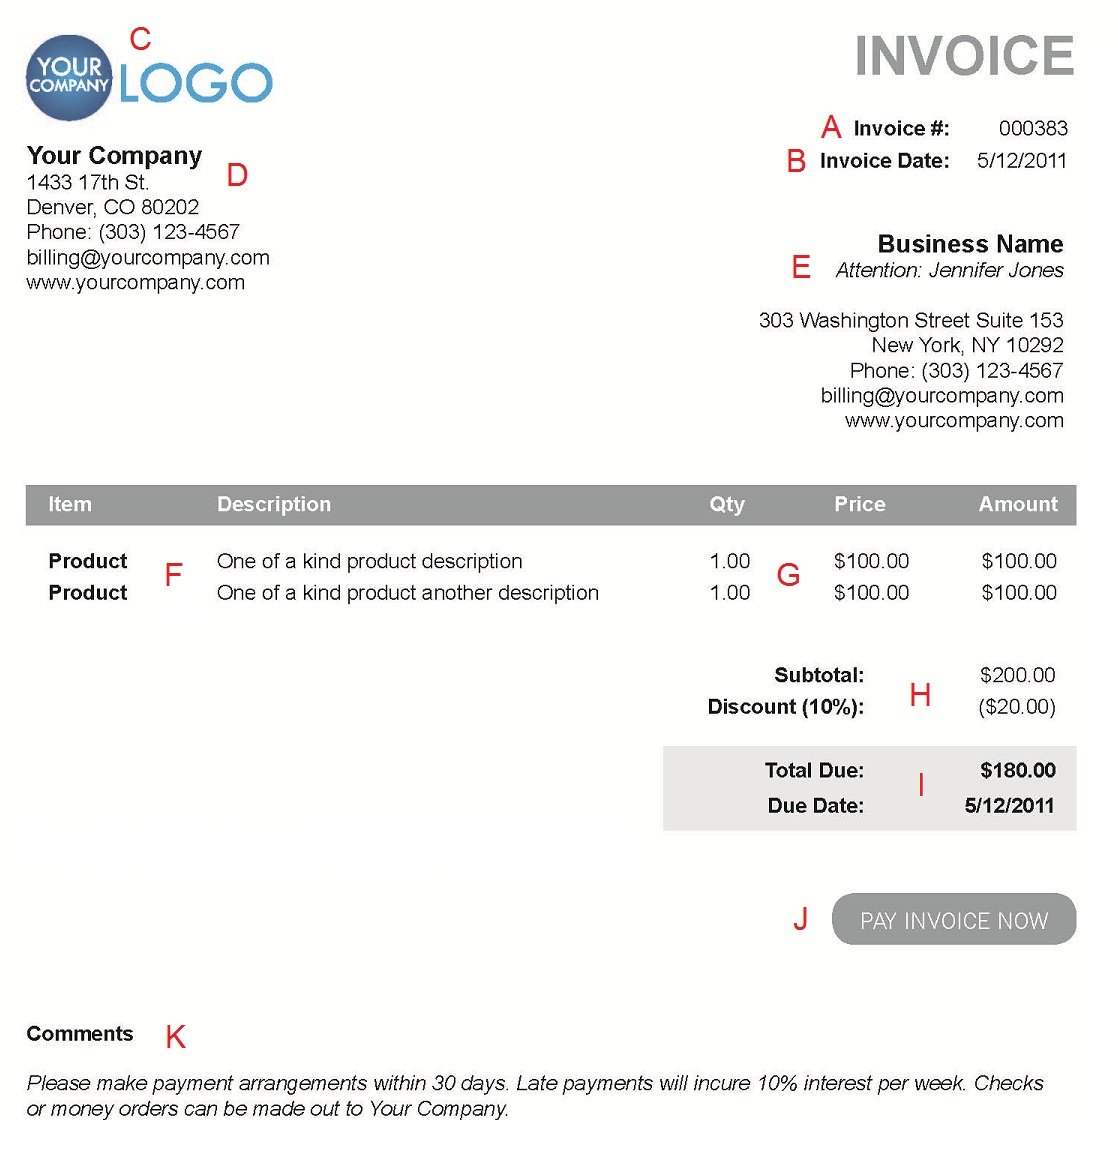 Reliefworkersus  Pleasing The  Different Sections Of An Electronic Payment Invoice With Marvelous A  With Enchanting How Much Does Paypal Charge For Invoice Also Vendor Invoice In Addition Invoice Finance And Invoice Payment As Well As What Is An Ebay Invoice Additionally Past Due Invoice Letter From Paysimplecom With Reliefworkersus  Marvelous The  Different Sections Of An Electronic Payment Invoice With Enchanting A  And Pleasing How Much Does Paypal Charge For Invoice Also Vendor Invoice In Addition Invoice Finance From Paysimplecom